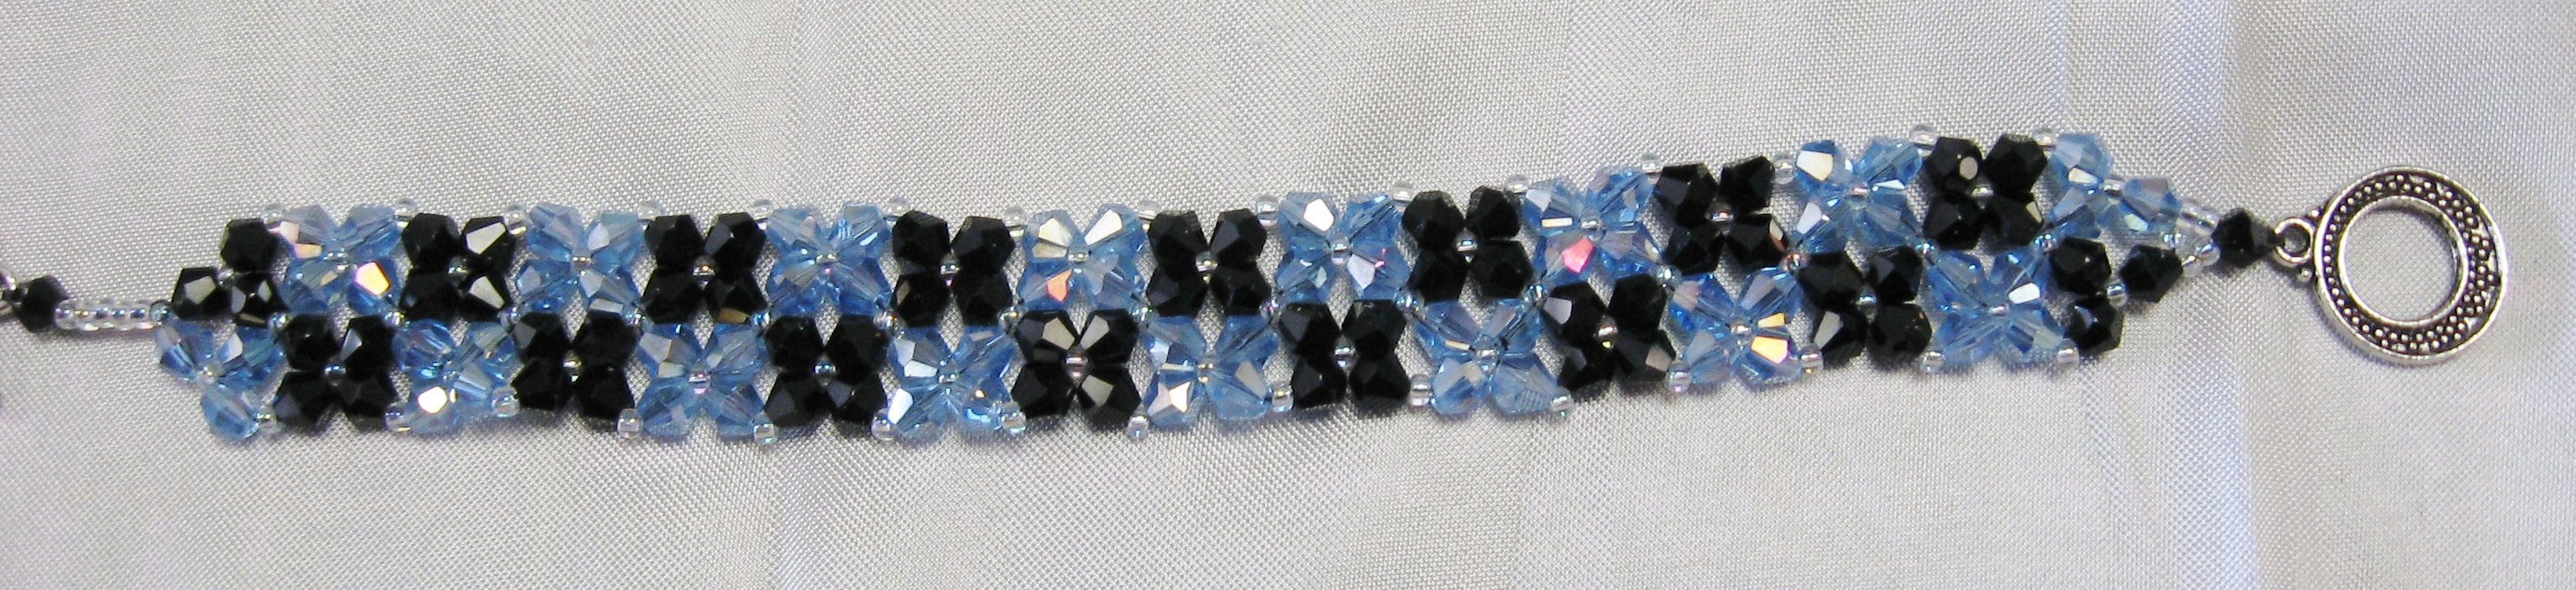 Crystals Galore Bracelet